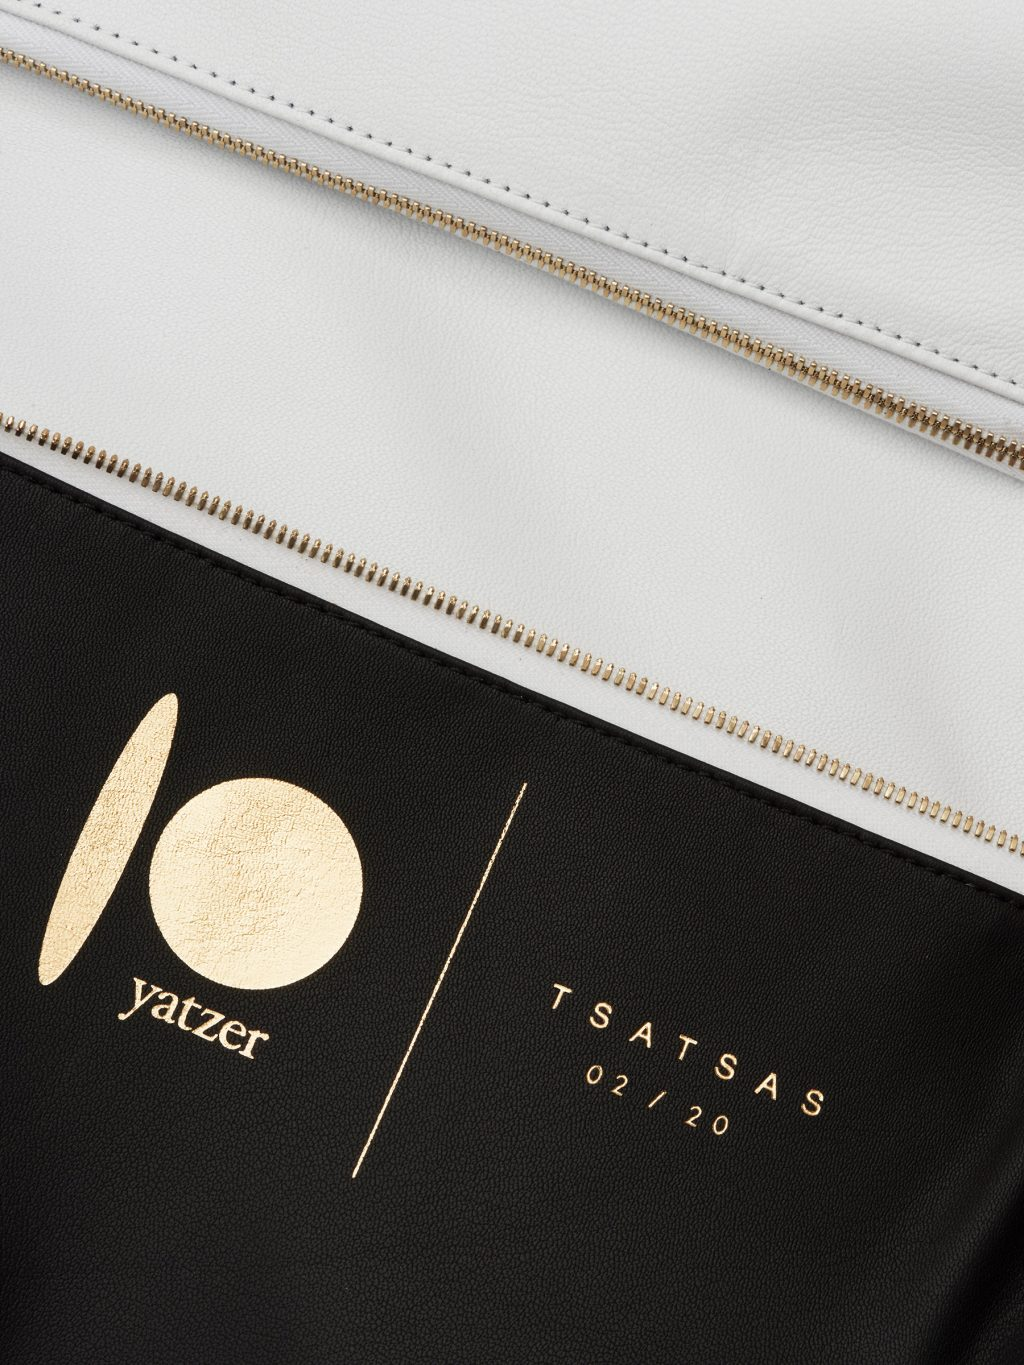 TSATSAS OTHER ONE bag for 10 by Yatzer